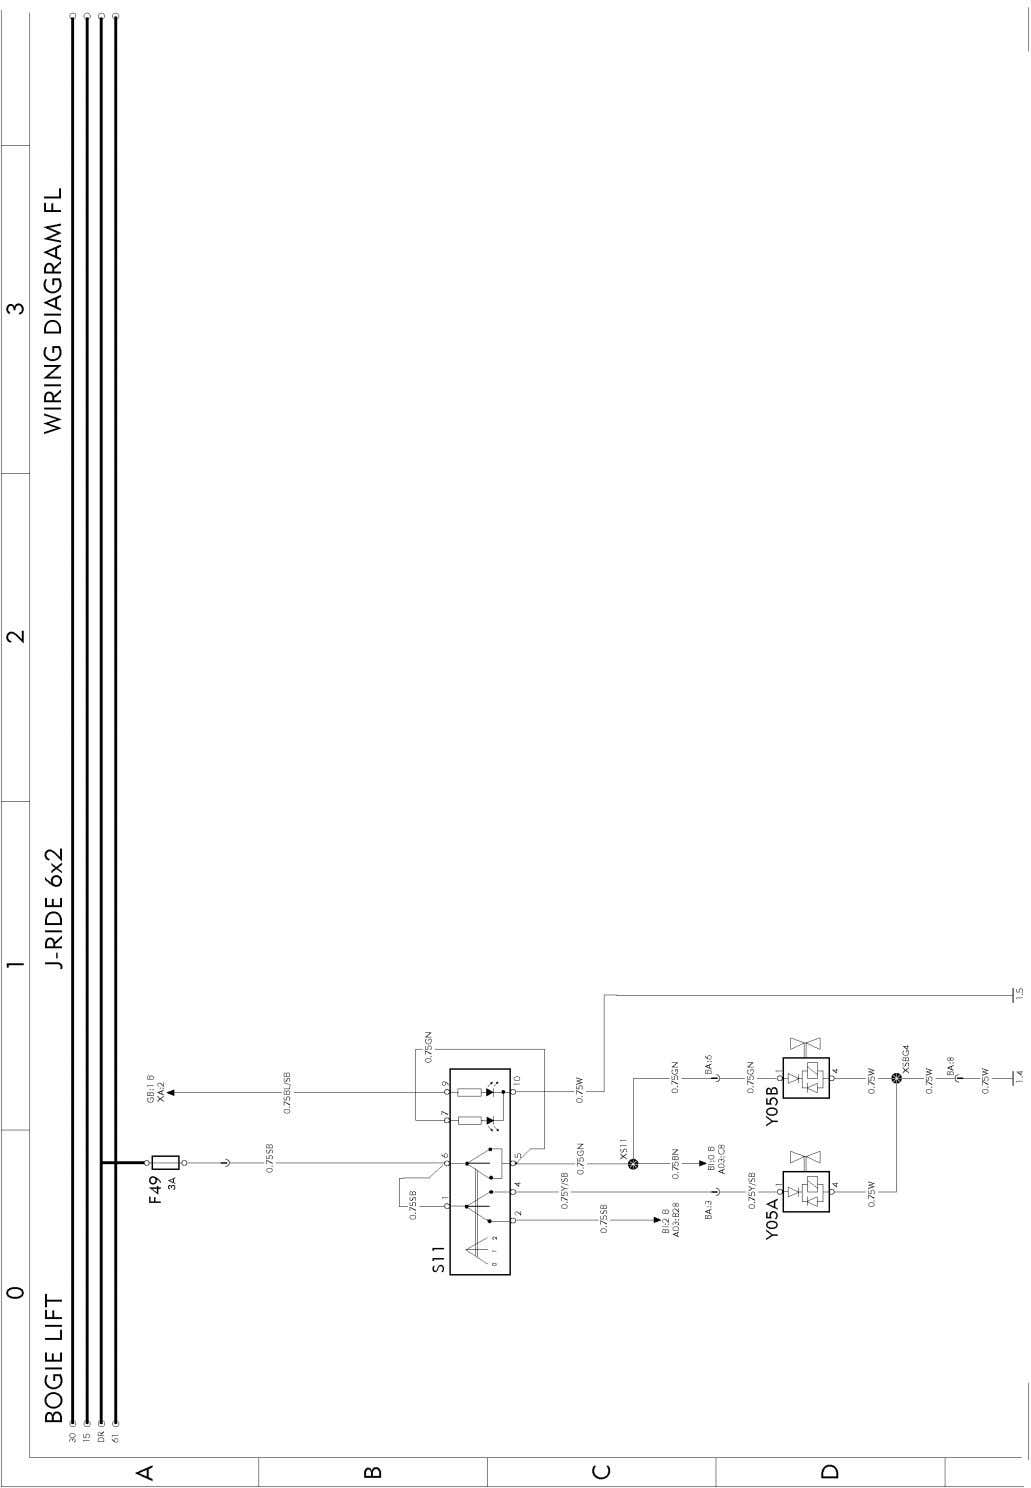 T3028416 Wiring diagram Page 53 (298)